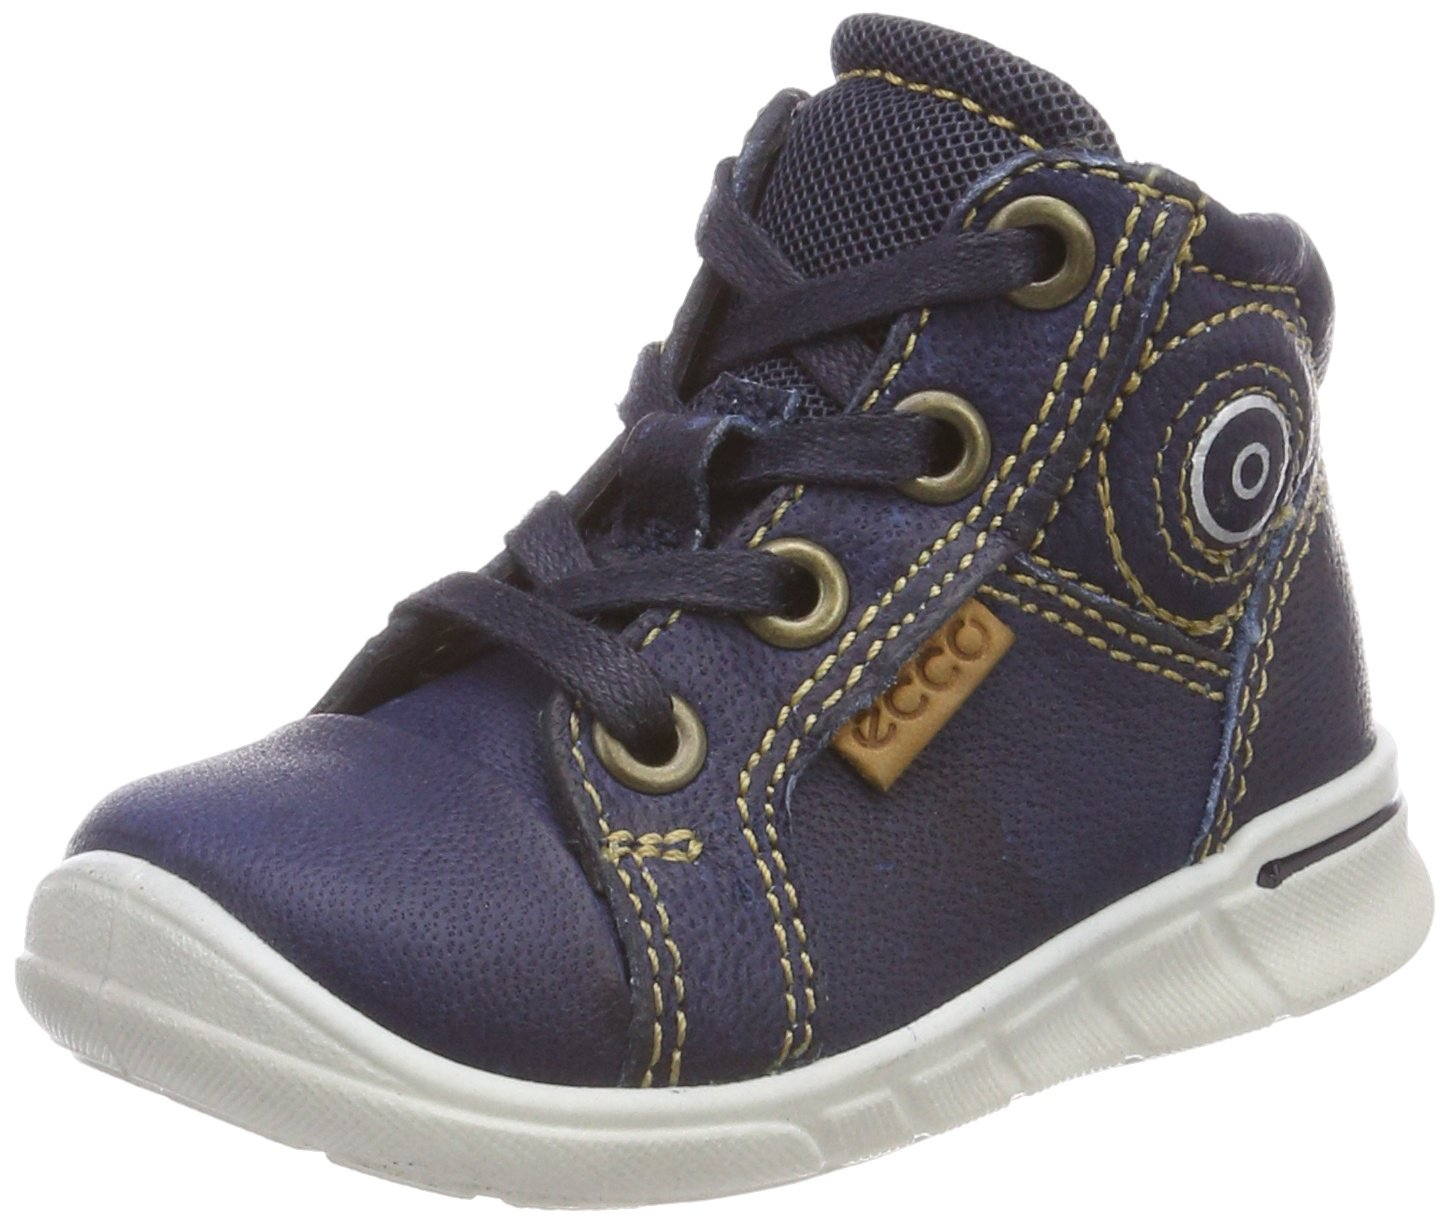 Ecco Unisex Babies' ECCO FIRST High-top trainers